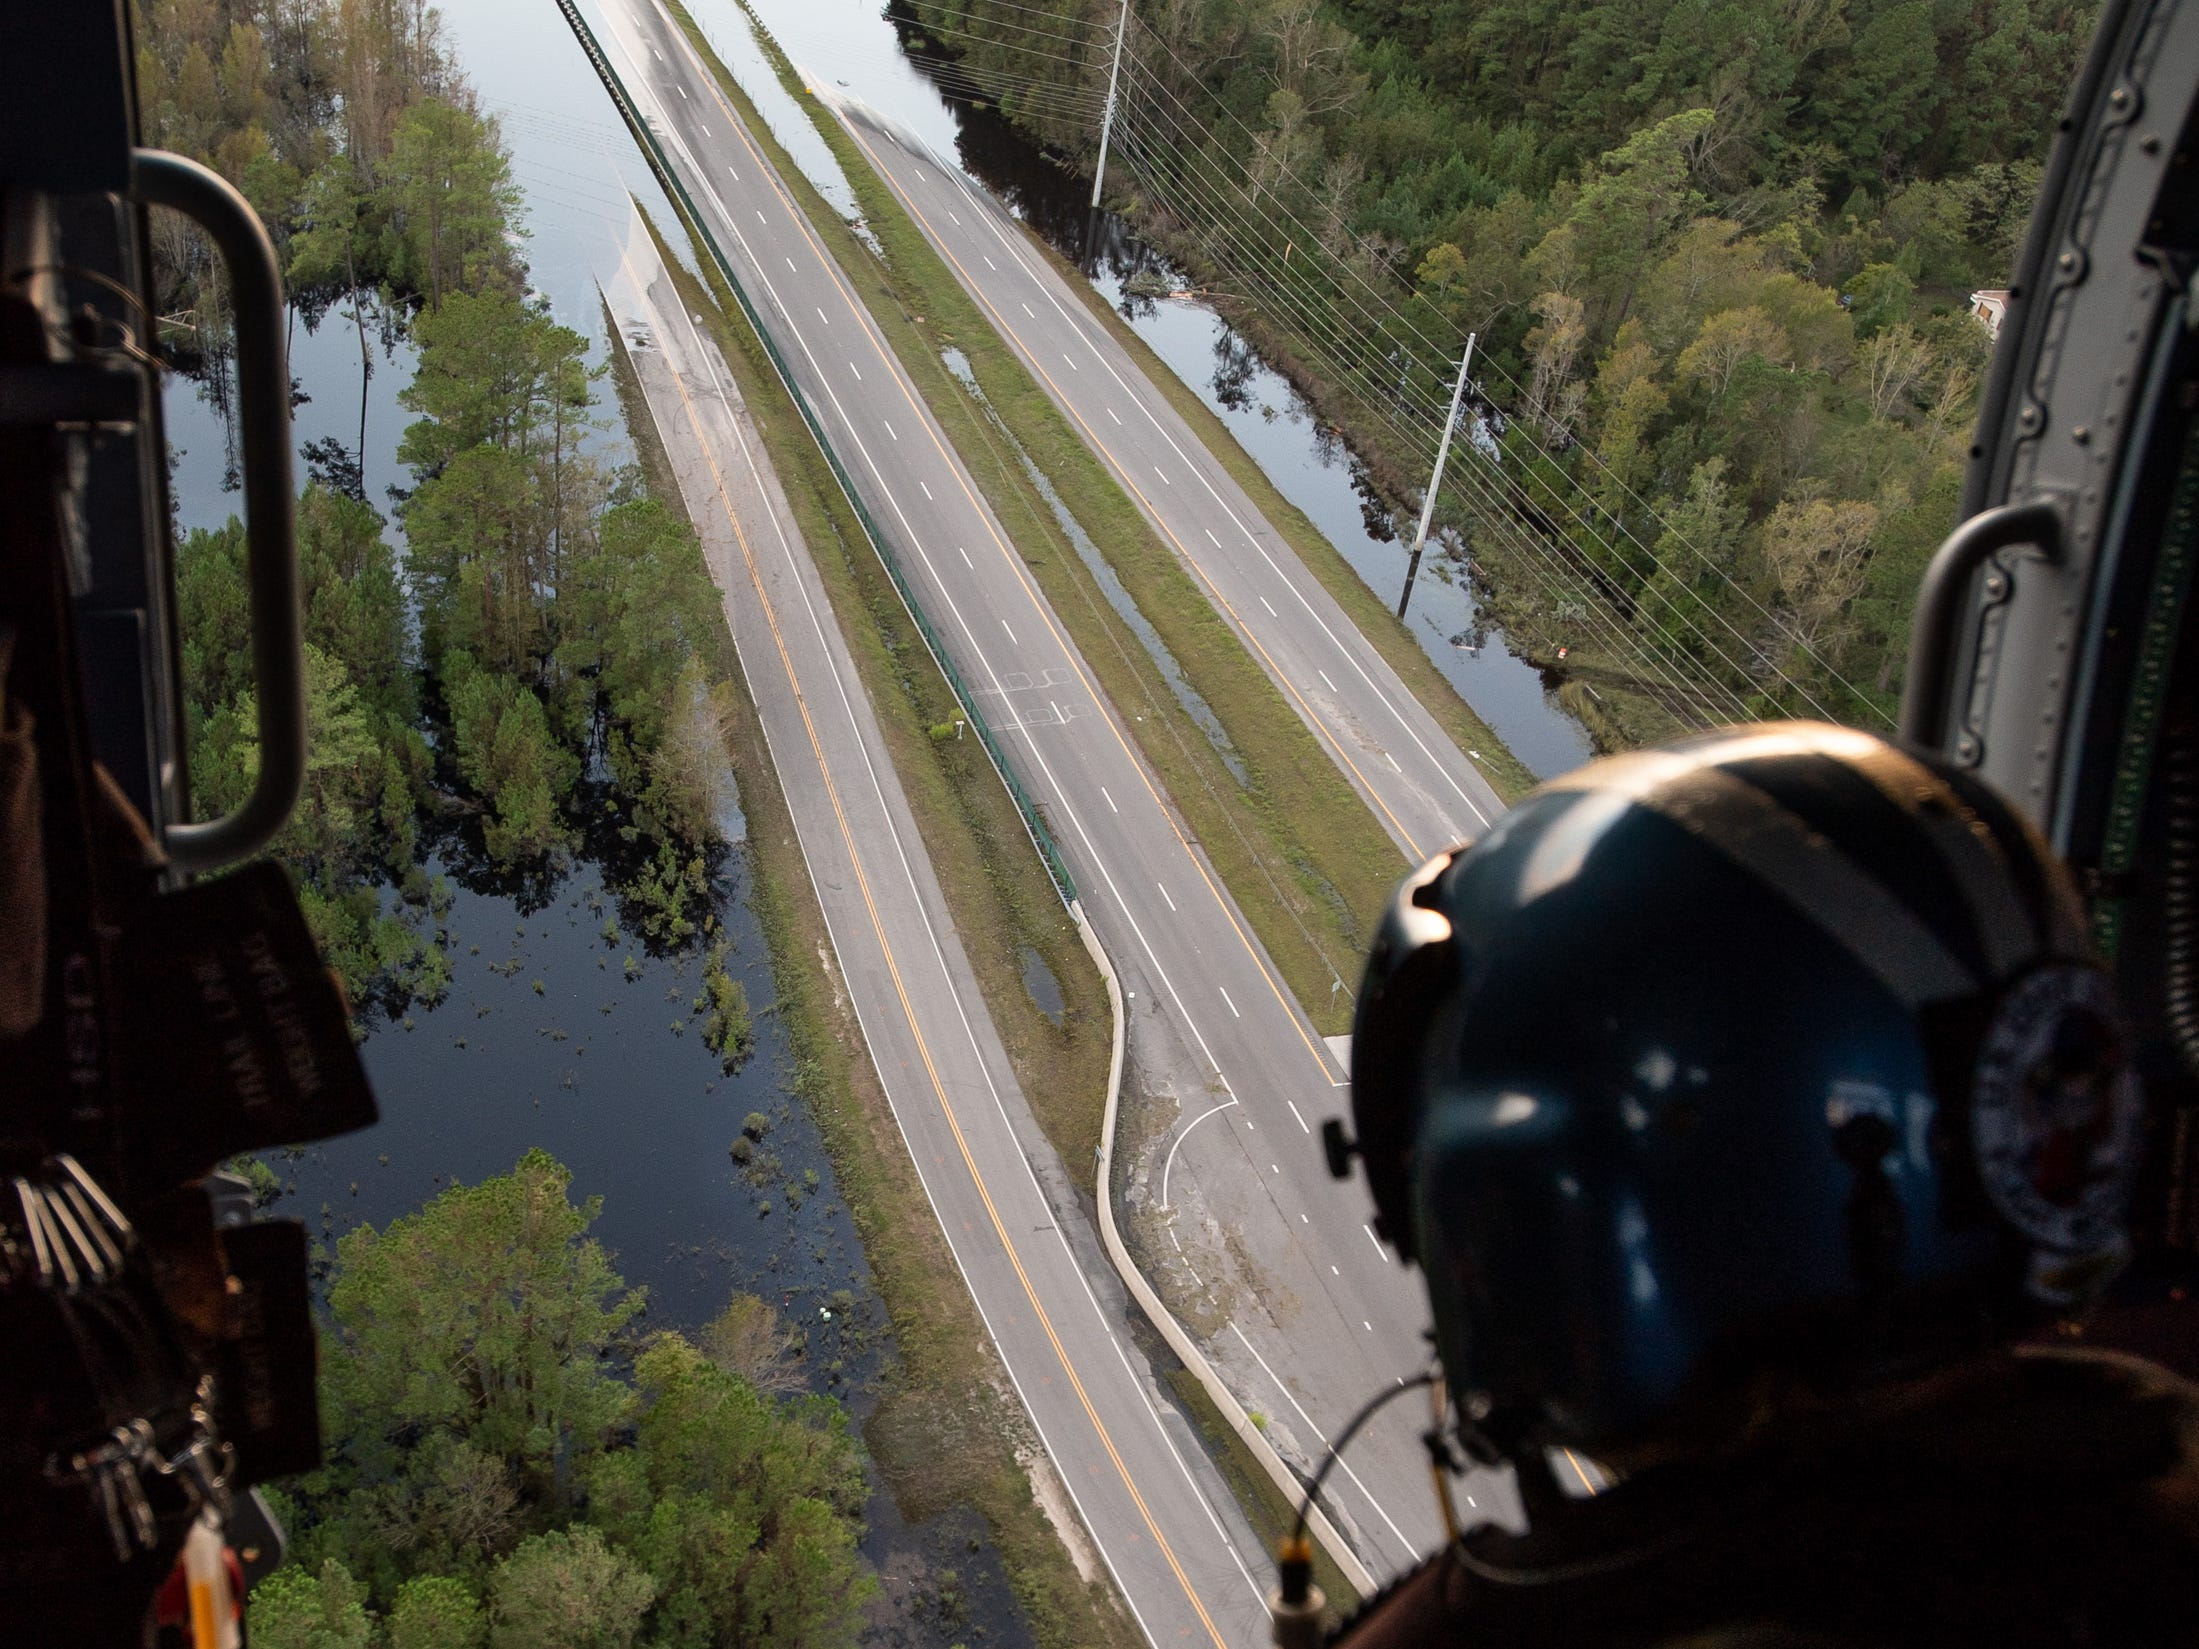 Coast Guard Flight Mechanic AMT Nick Gilkinson looks at the flooded US-17 from a MH-60T Jayhawk helicopter during a flood relief mission in Brunswick County, N.C., Monday, Sept. 17, 2018.